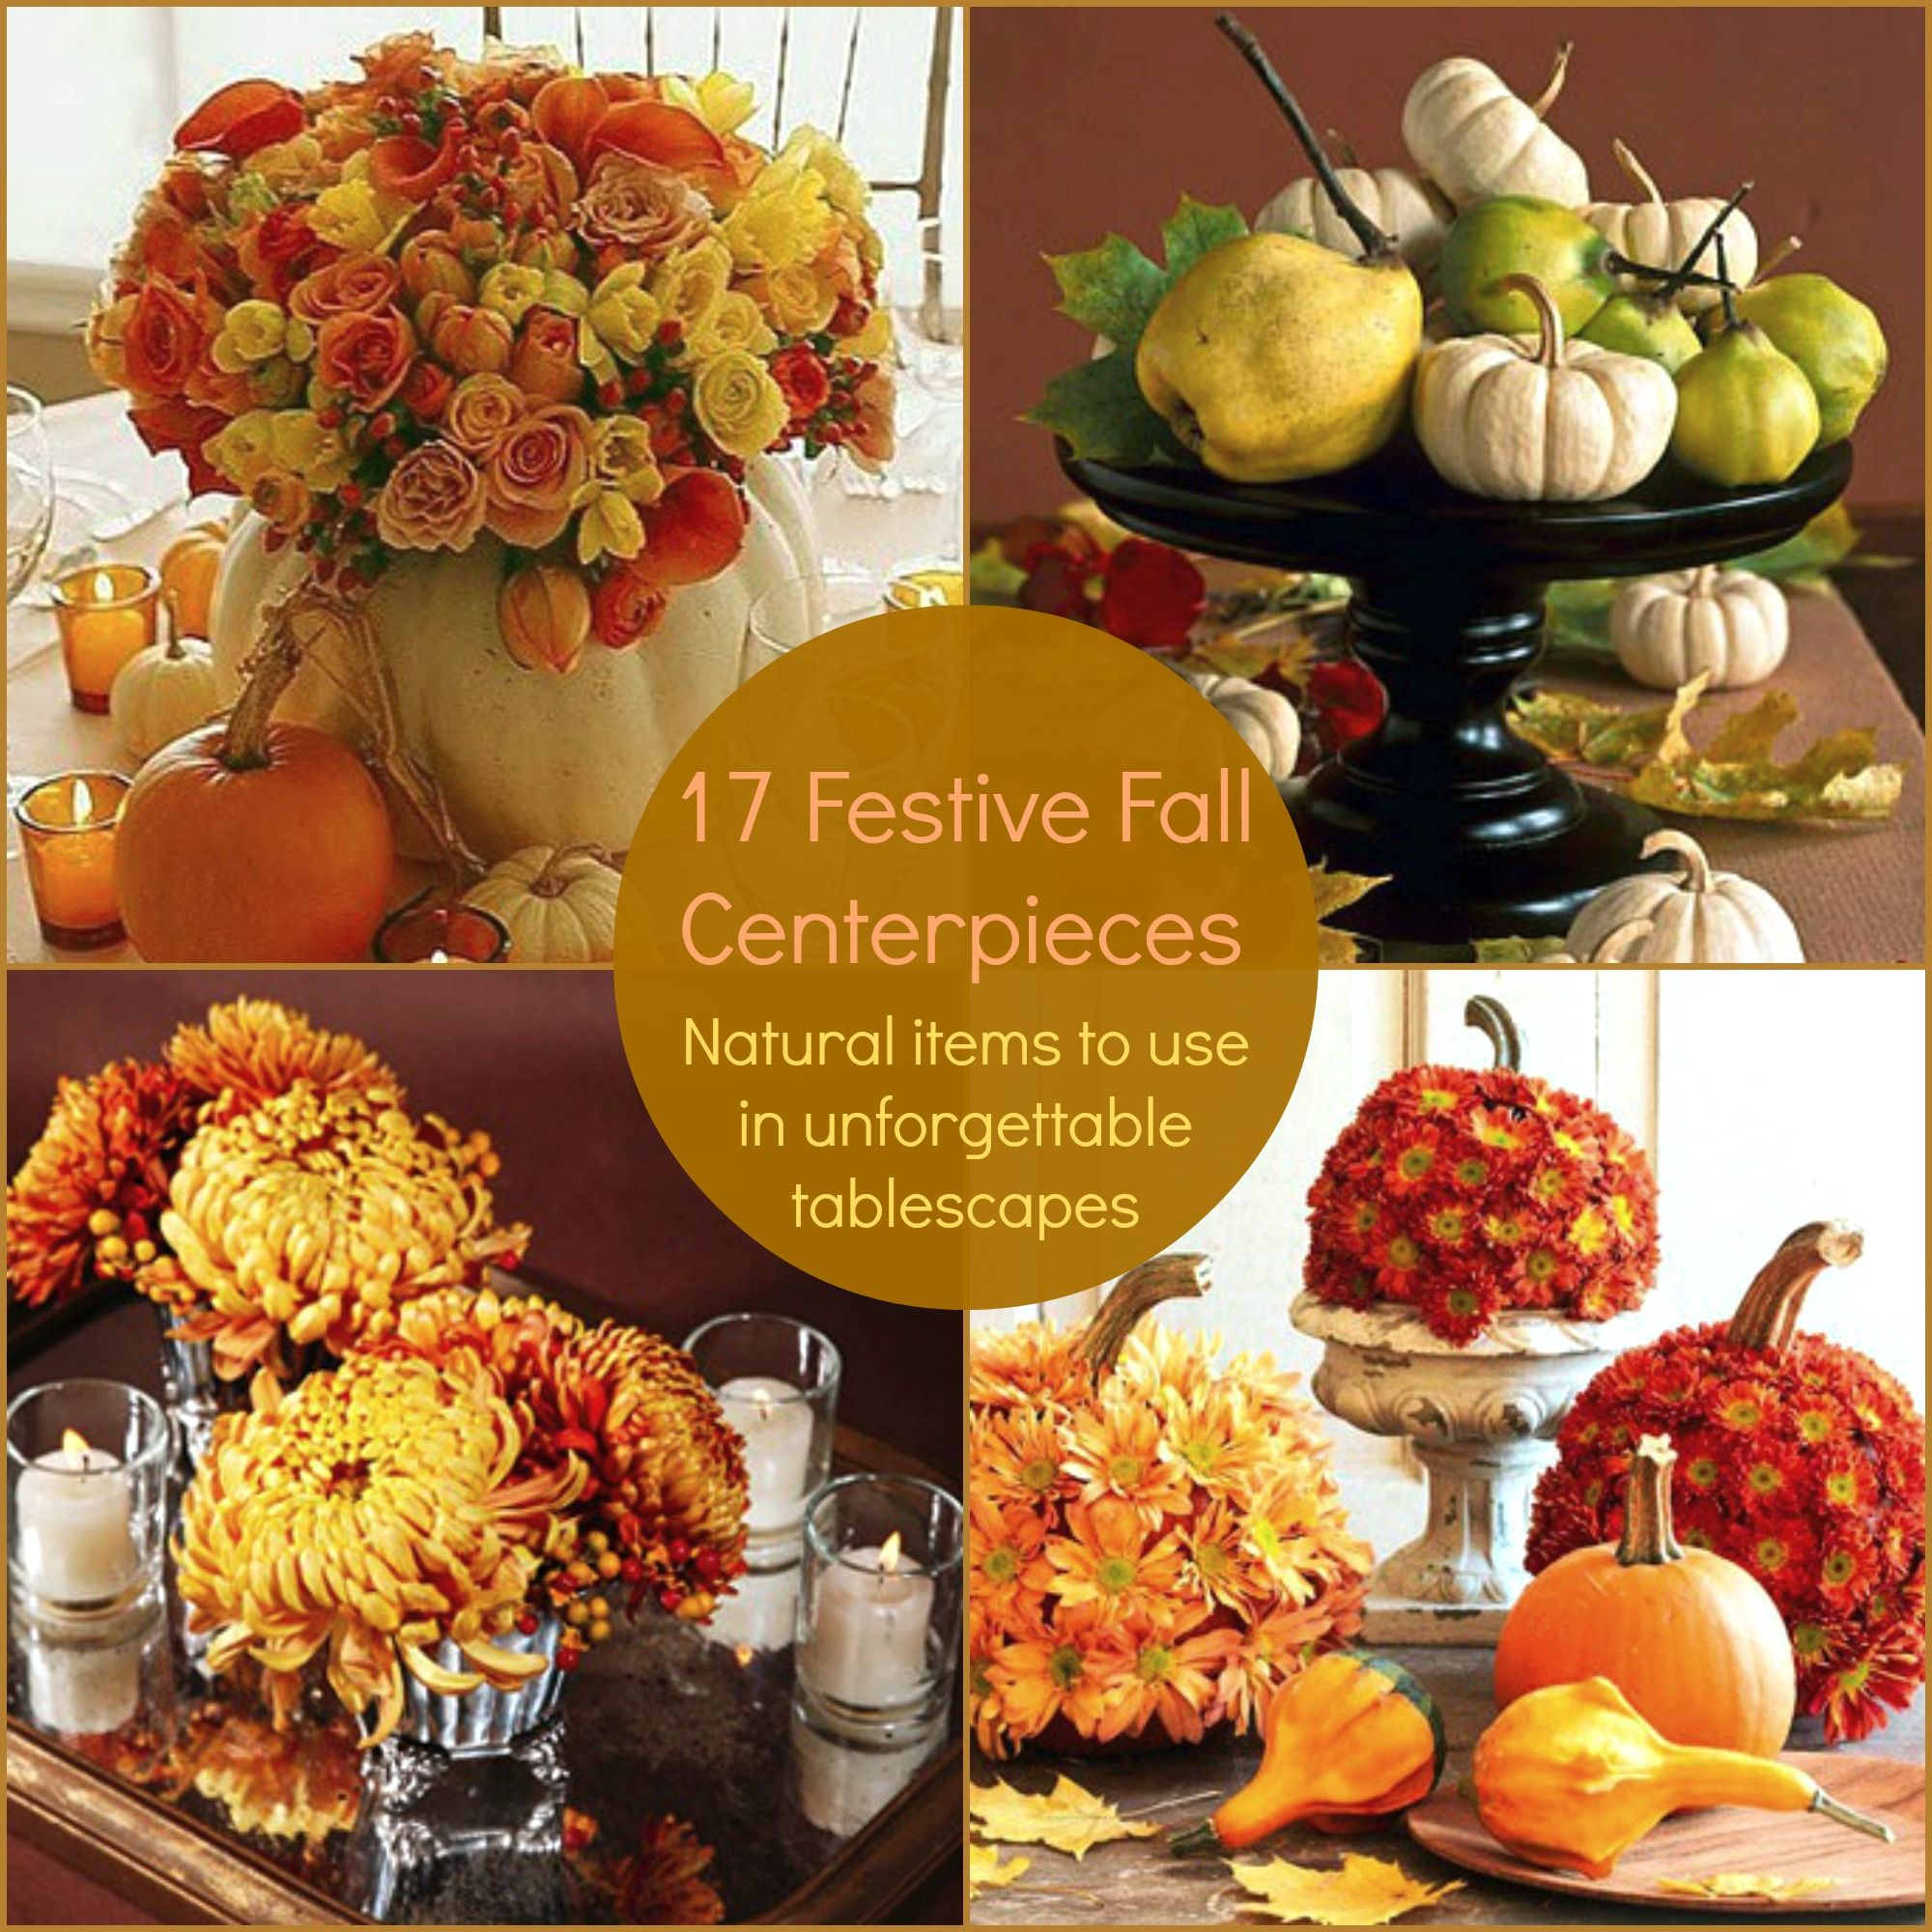 19 Festive Fall Centerpieces That Are Easy To DIY And Look Lovely